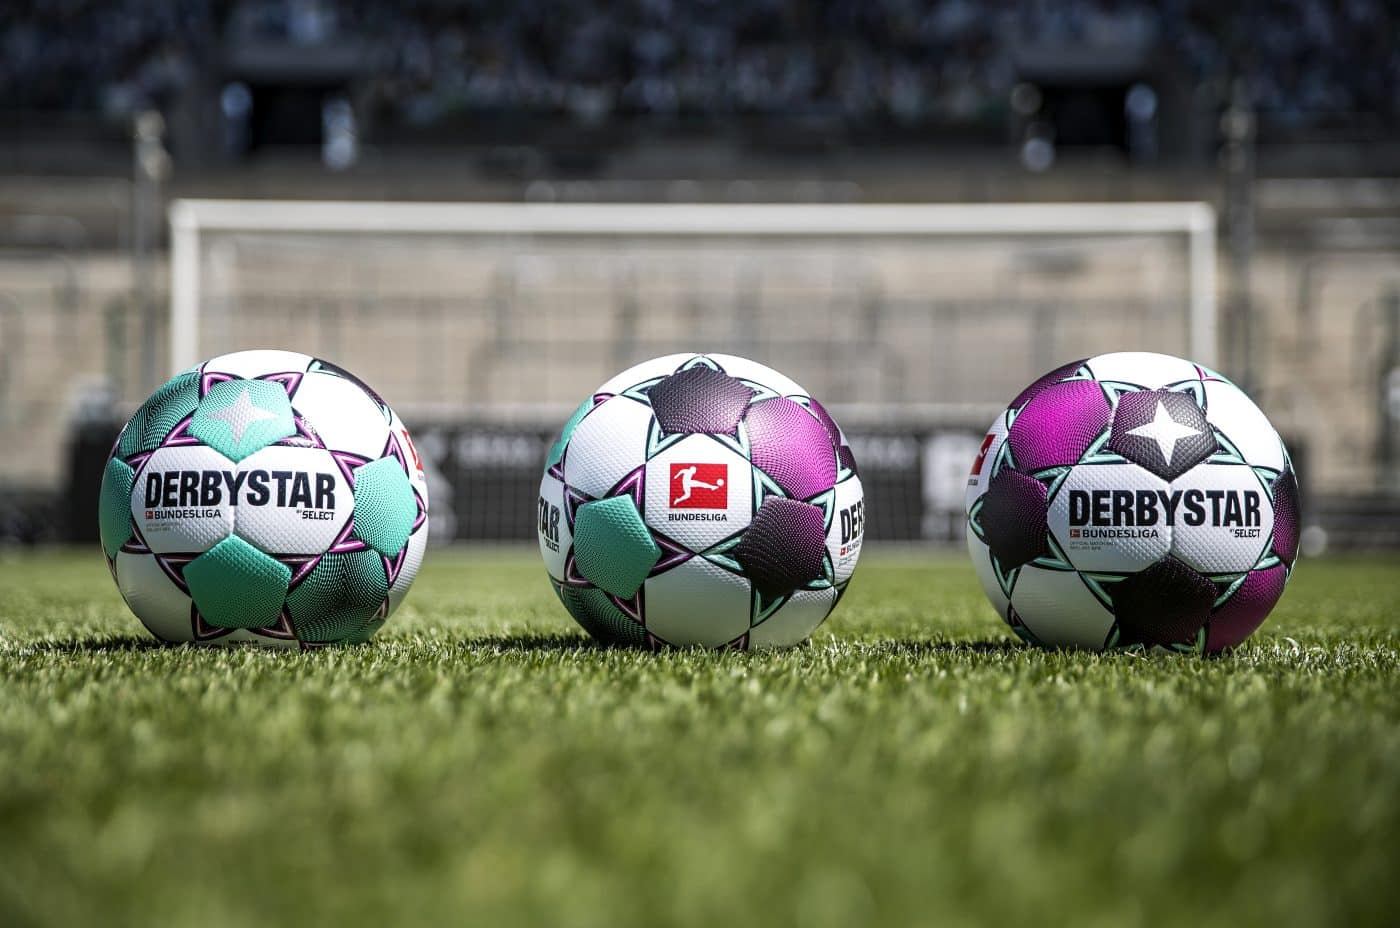 ballon-bundesliga-2020-2021-select-derbystar-1